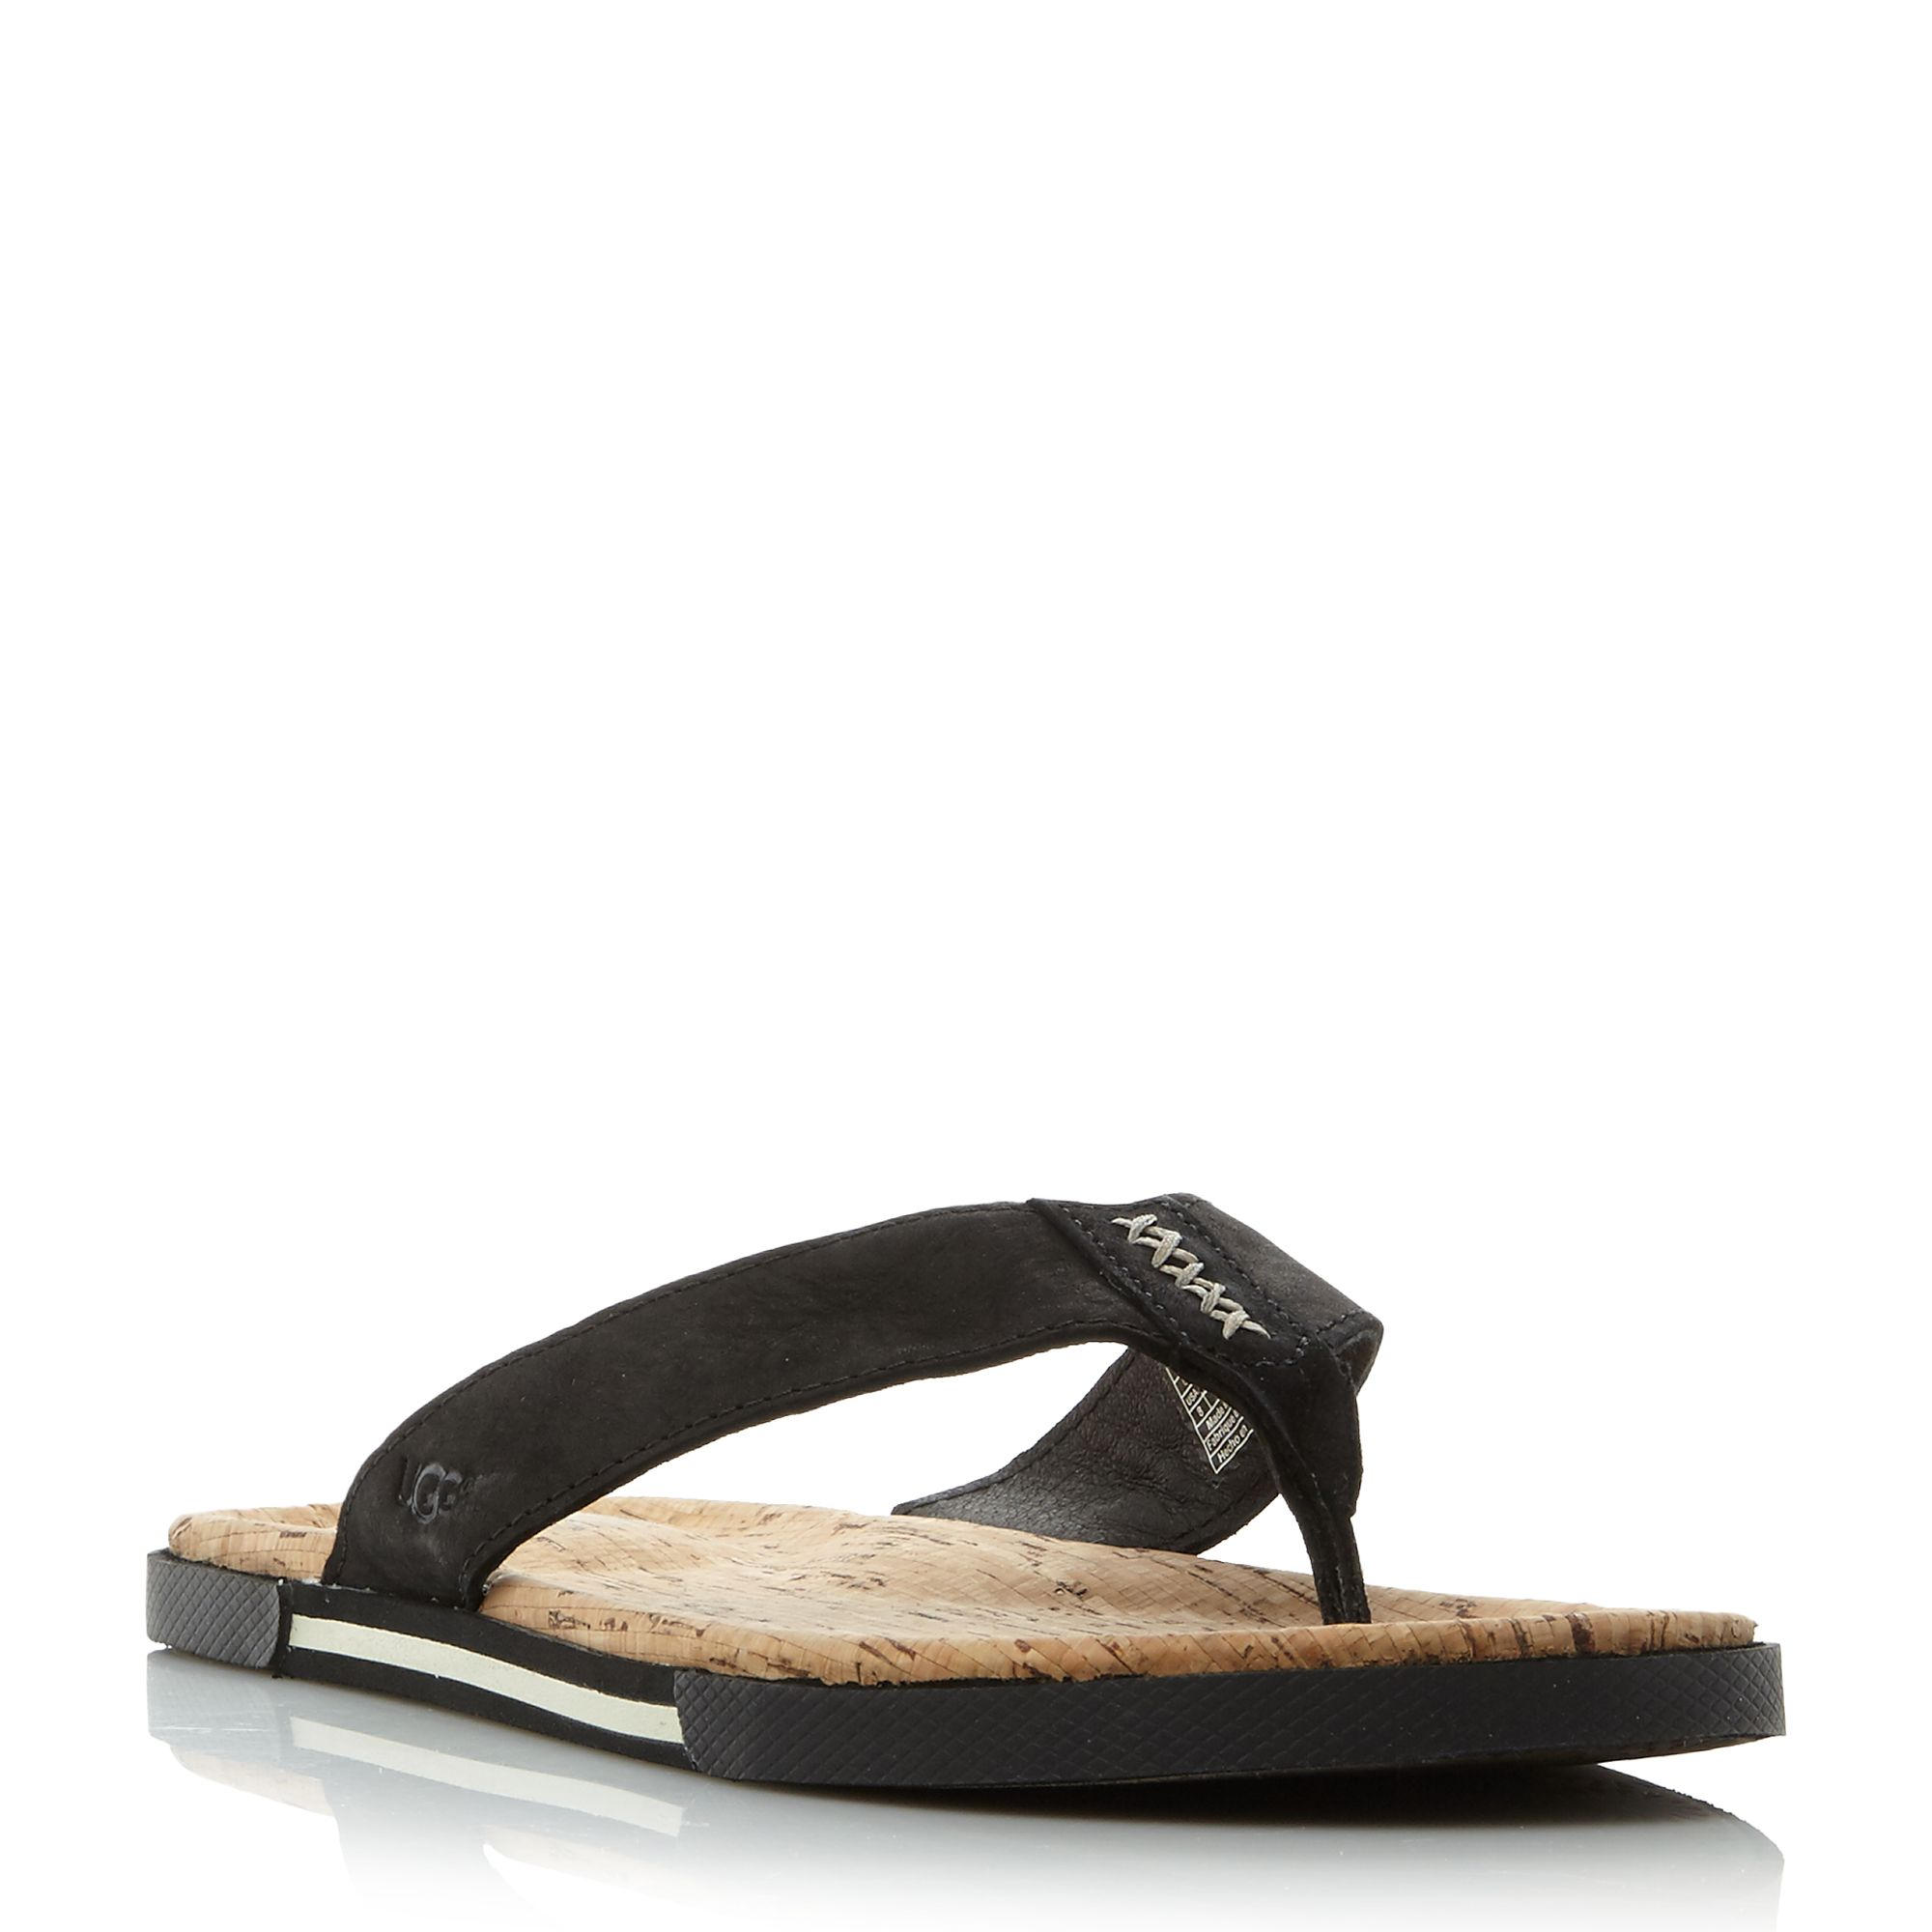 Buy Cheap Cork Sandals Compare Women S Footwear Prices